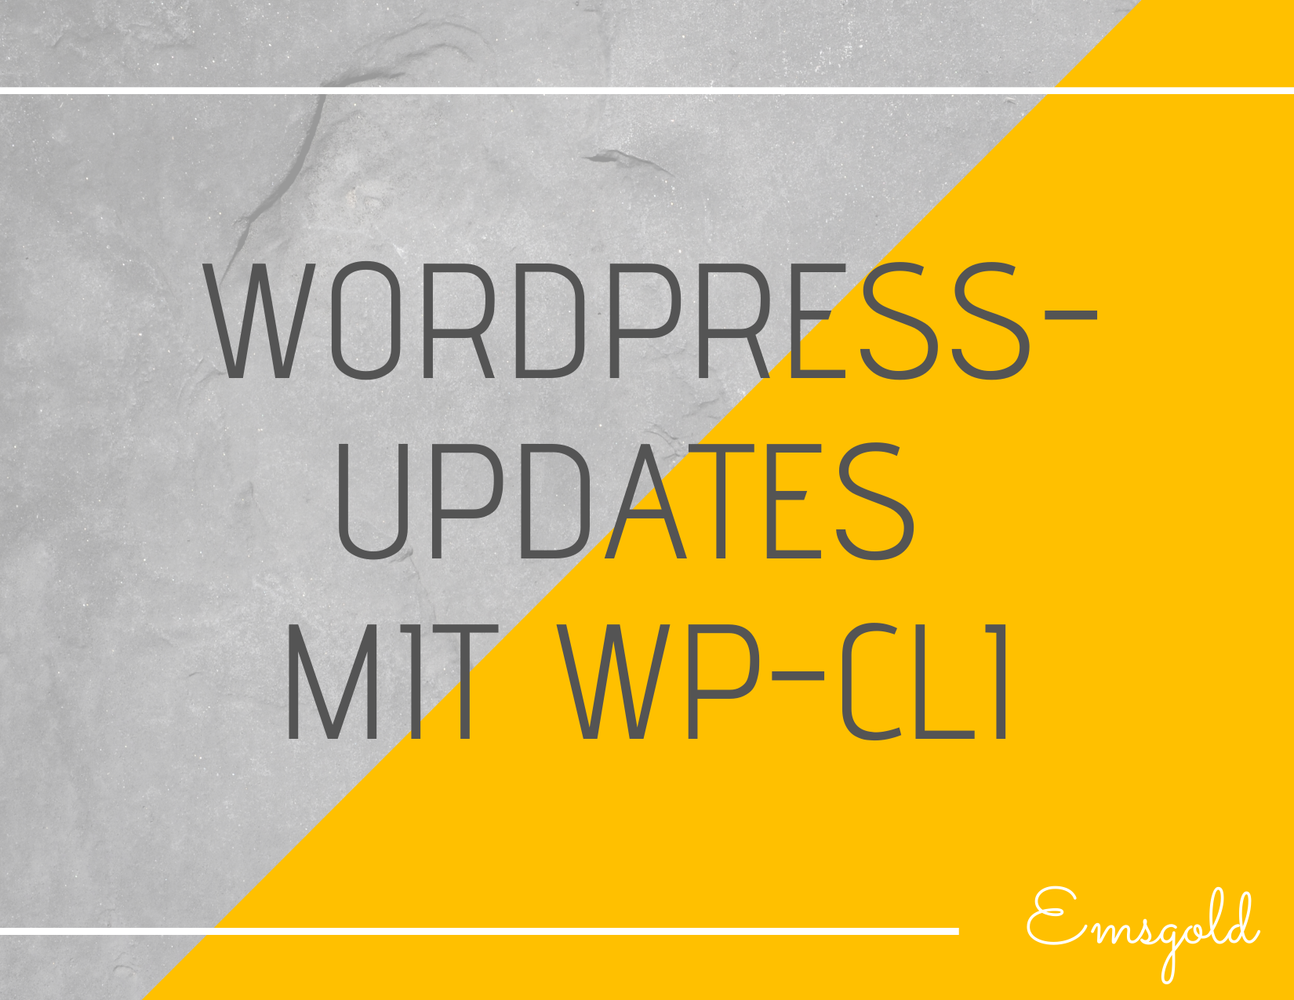 Wordpress-Updates mit WP-CLI